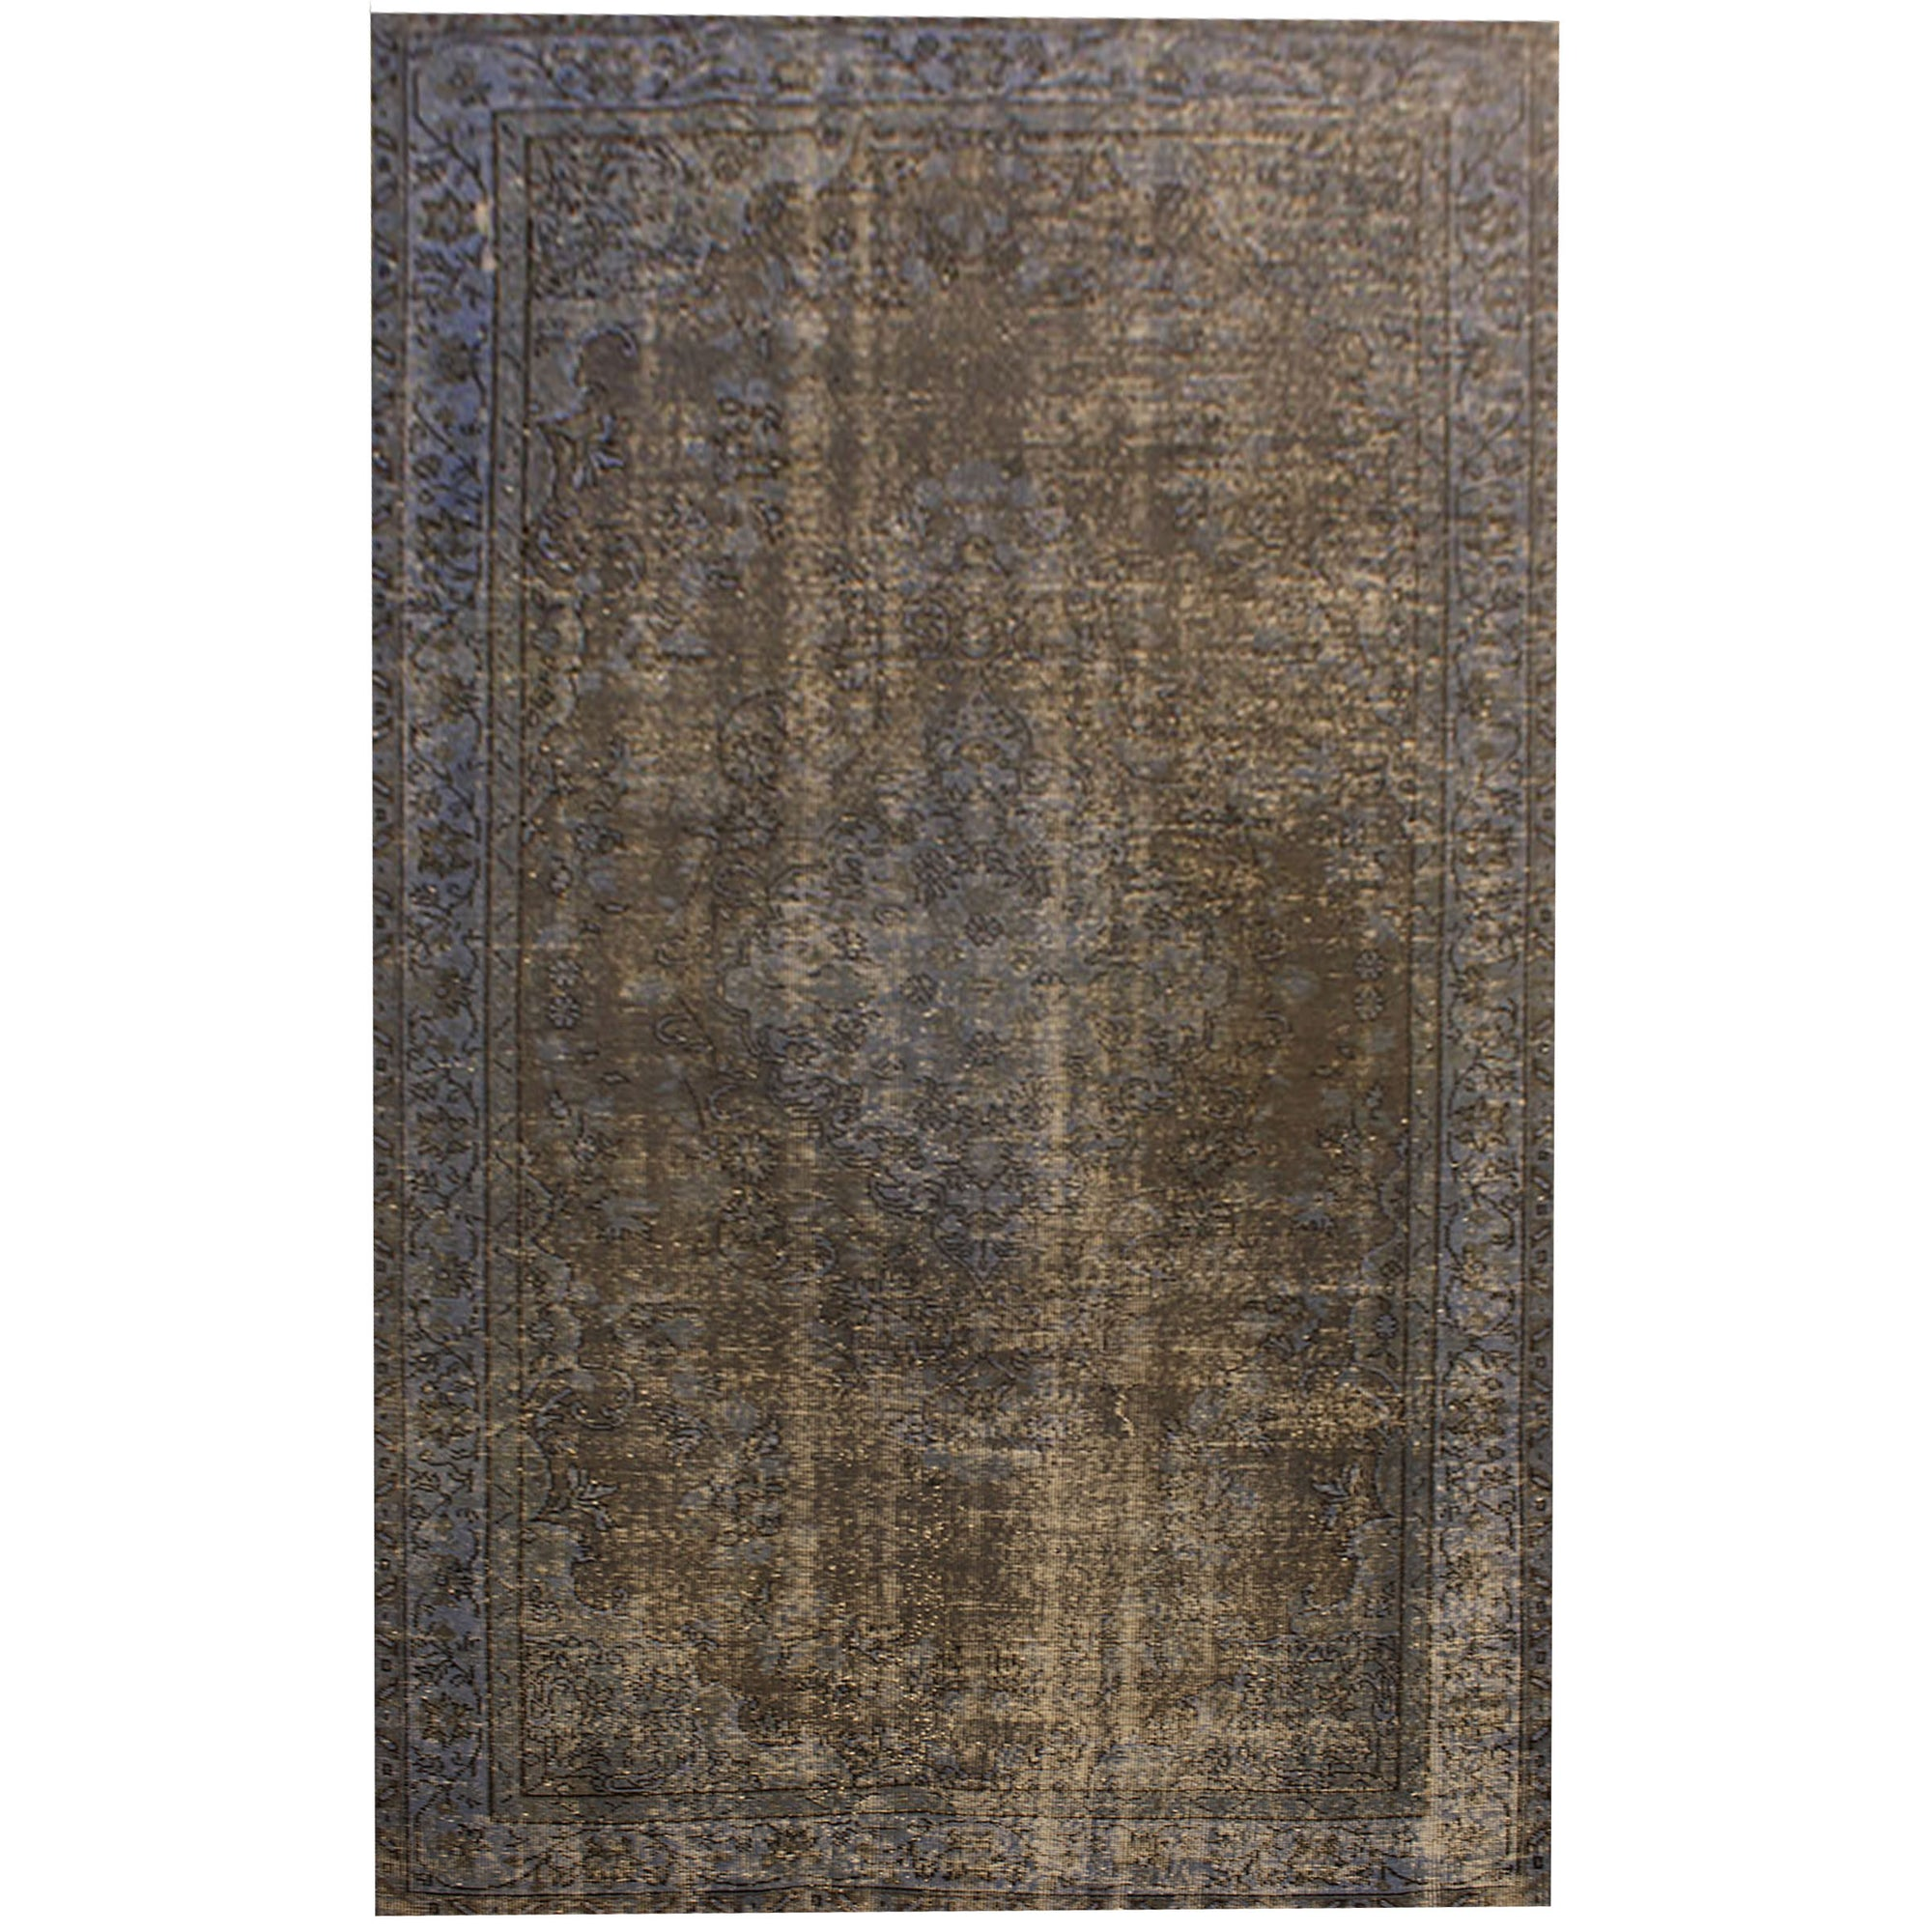 158 X 266 Anatolian Hand Knotted Carpet Vintage Style 60N2396 -  158 × 266 سجادة أناضولية معقودة يدويًا - Shop Online Furniture and Home Decor Store in Dubai, UAE at ebarza